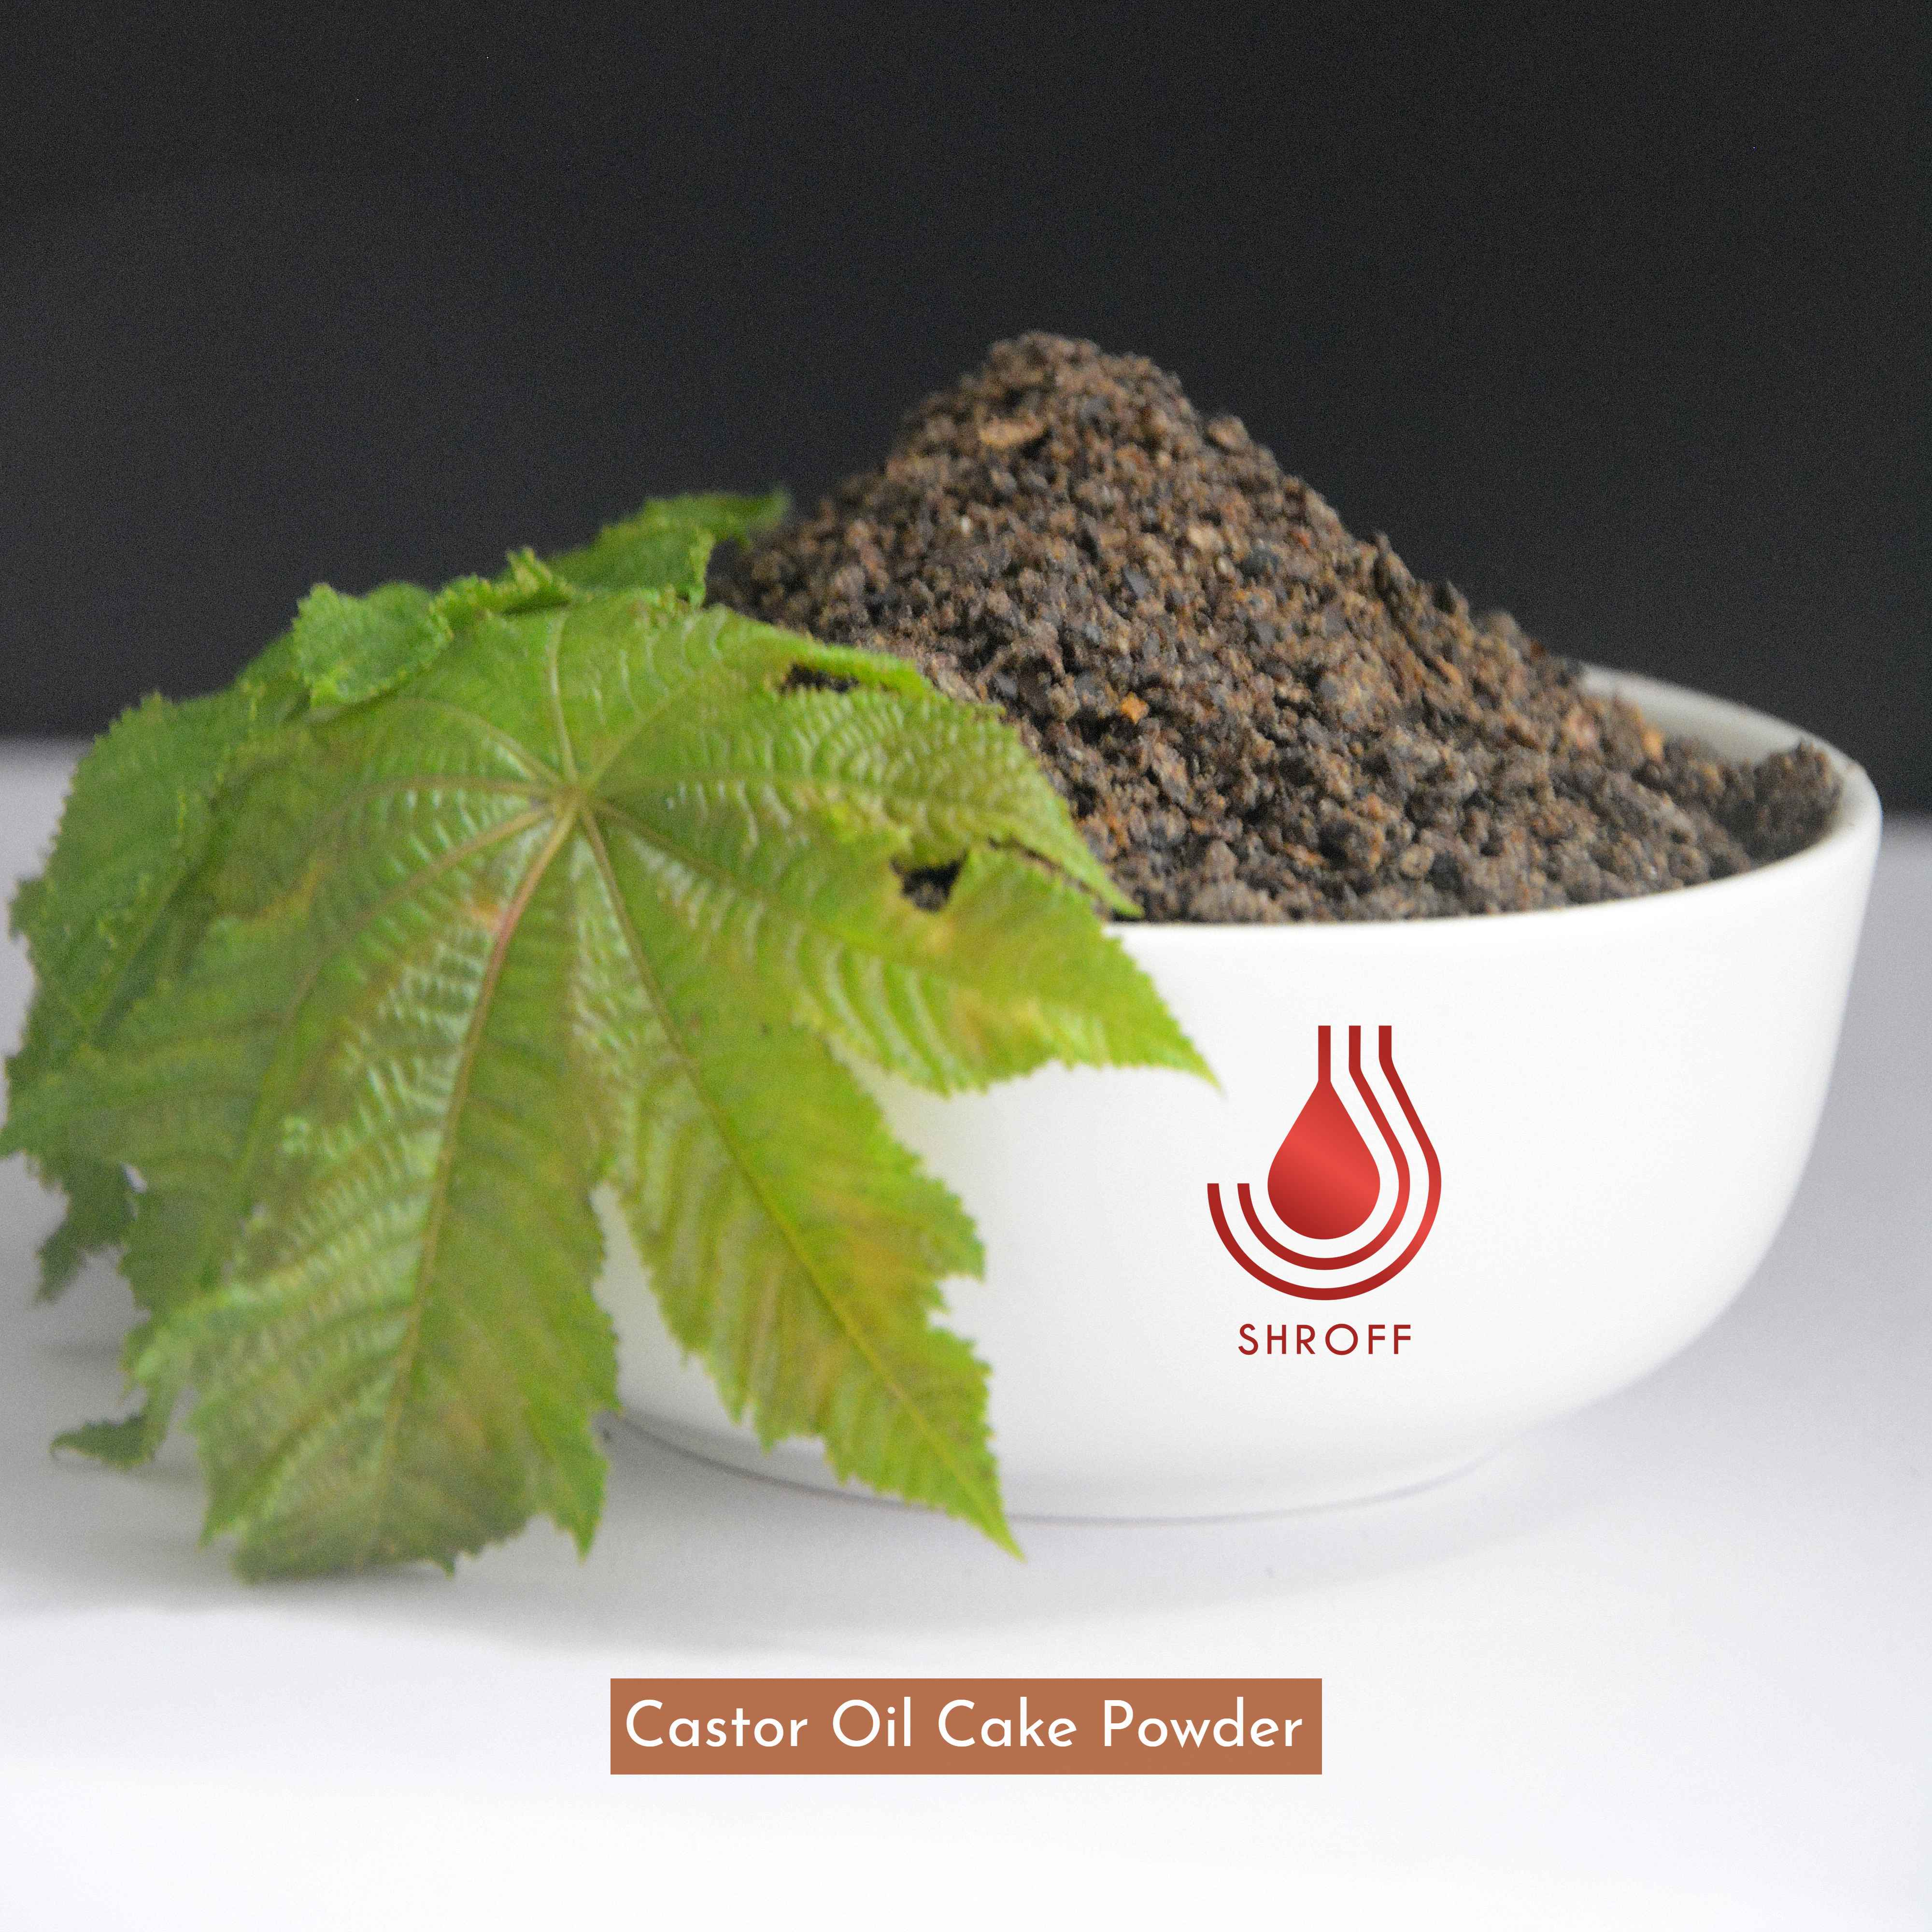 Castor Oil Cake Powder